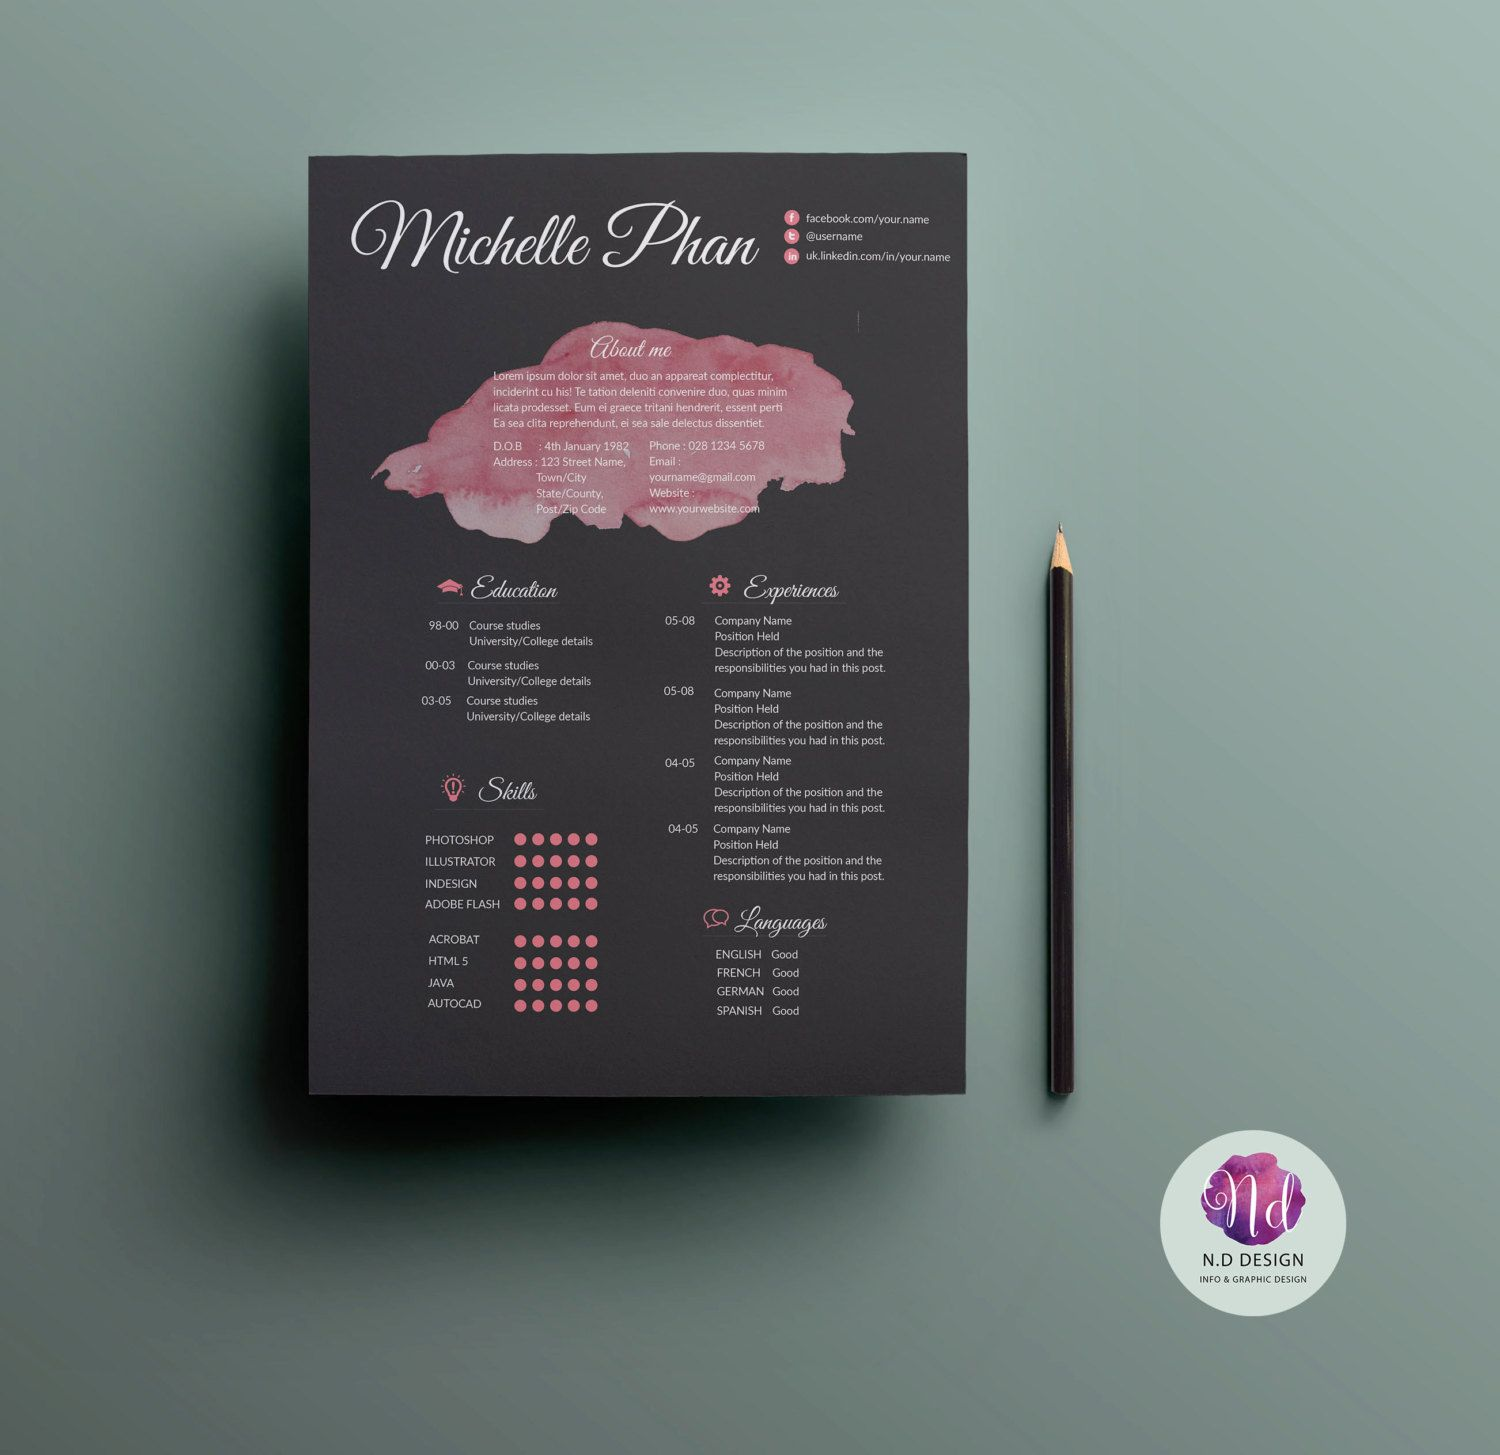 Creative Cv Template Resume Template Cover Letter Reference Letter Template 2 Color Options Elegant R Creative Cv Creative Cvs Creative Cv Template